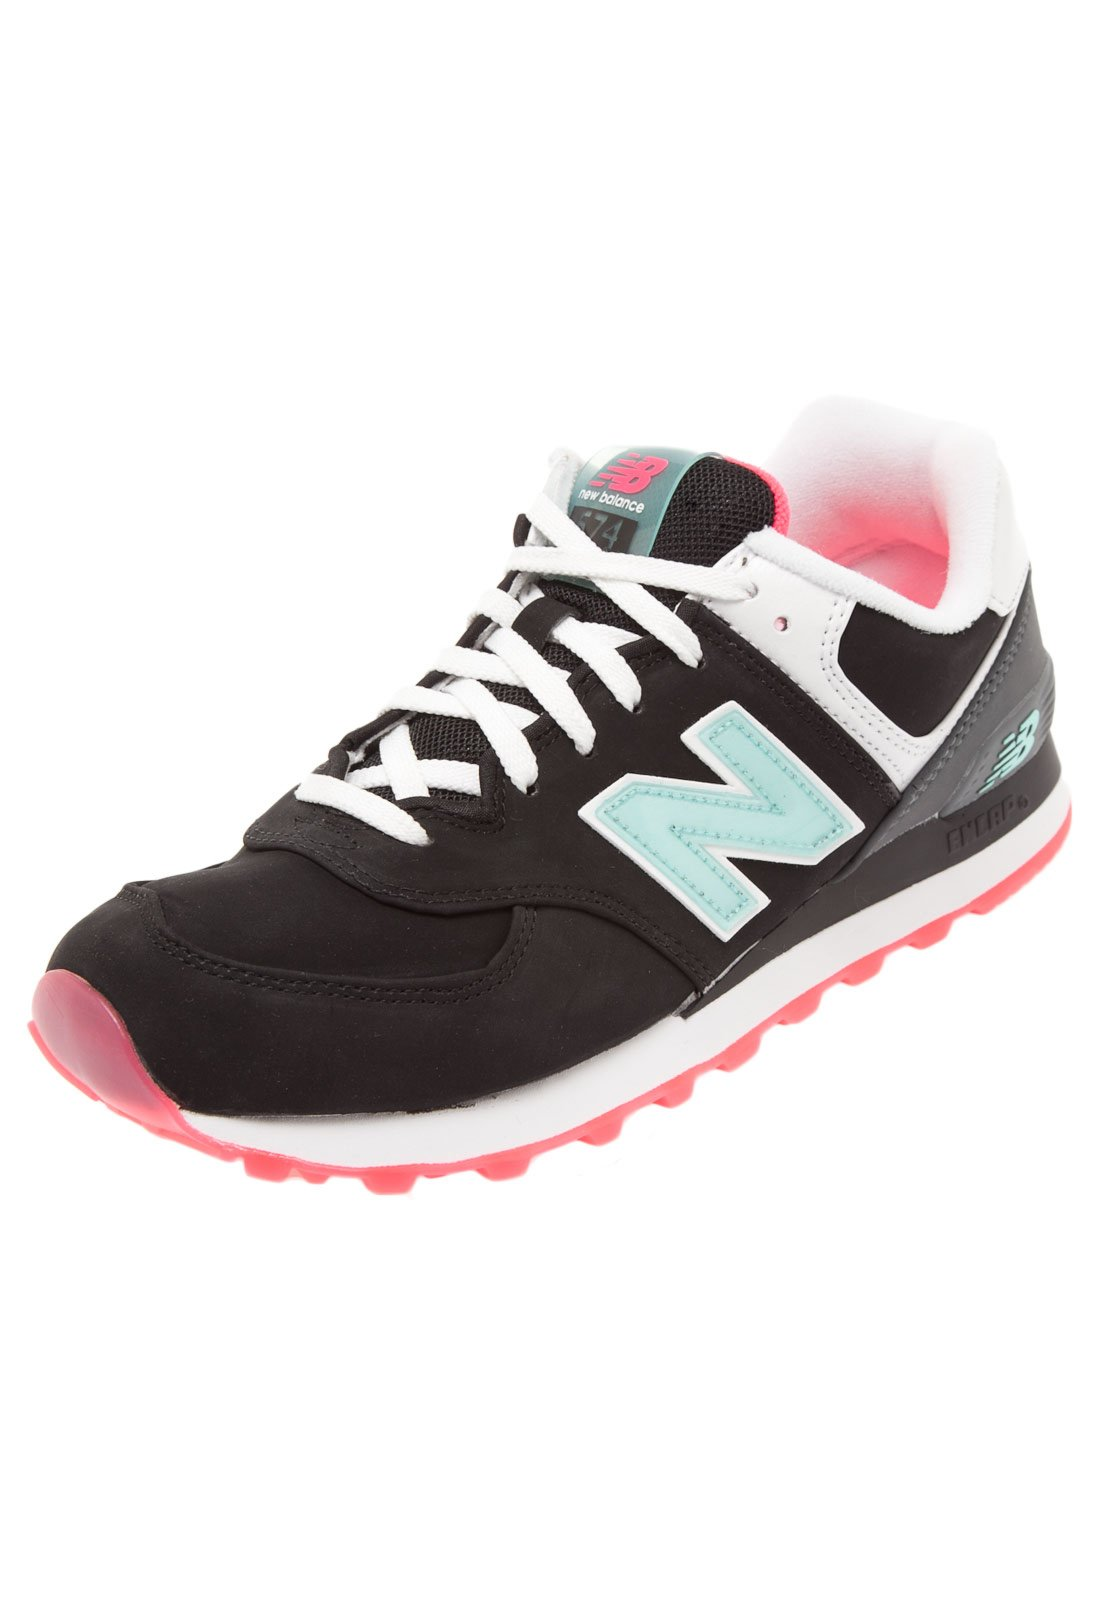 new balance tenis sale   OFF74% Discounts ff8750a3599